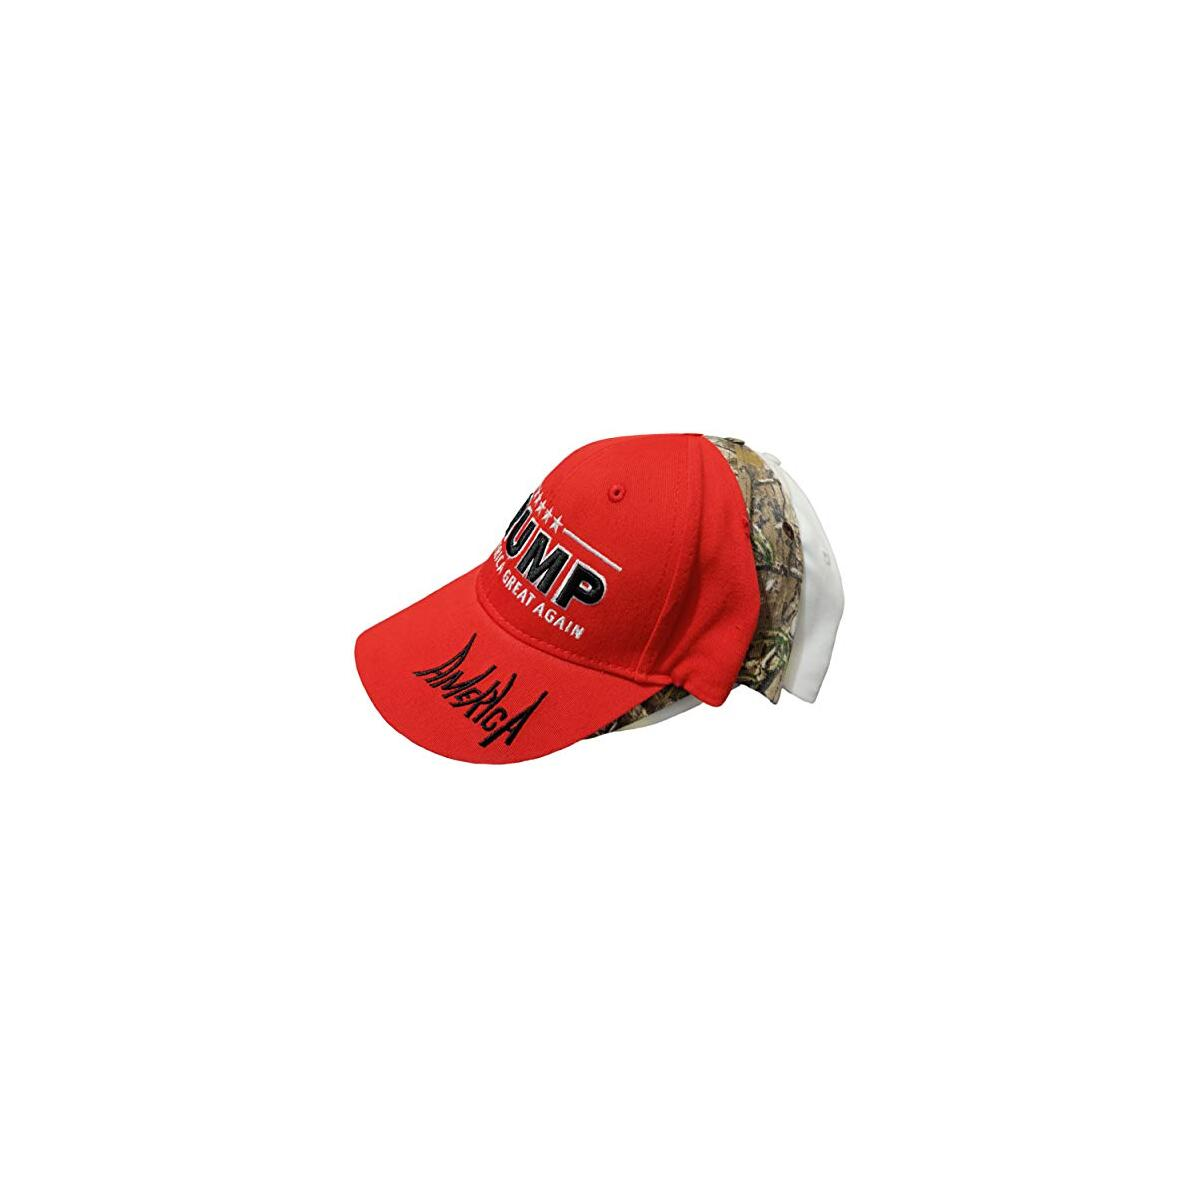 Make America Great Again Fitted hat MAGA Donald Trump 2020 red hat Baseball Adjustable Trucker Army Golf caps for Men Women